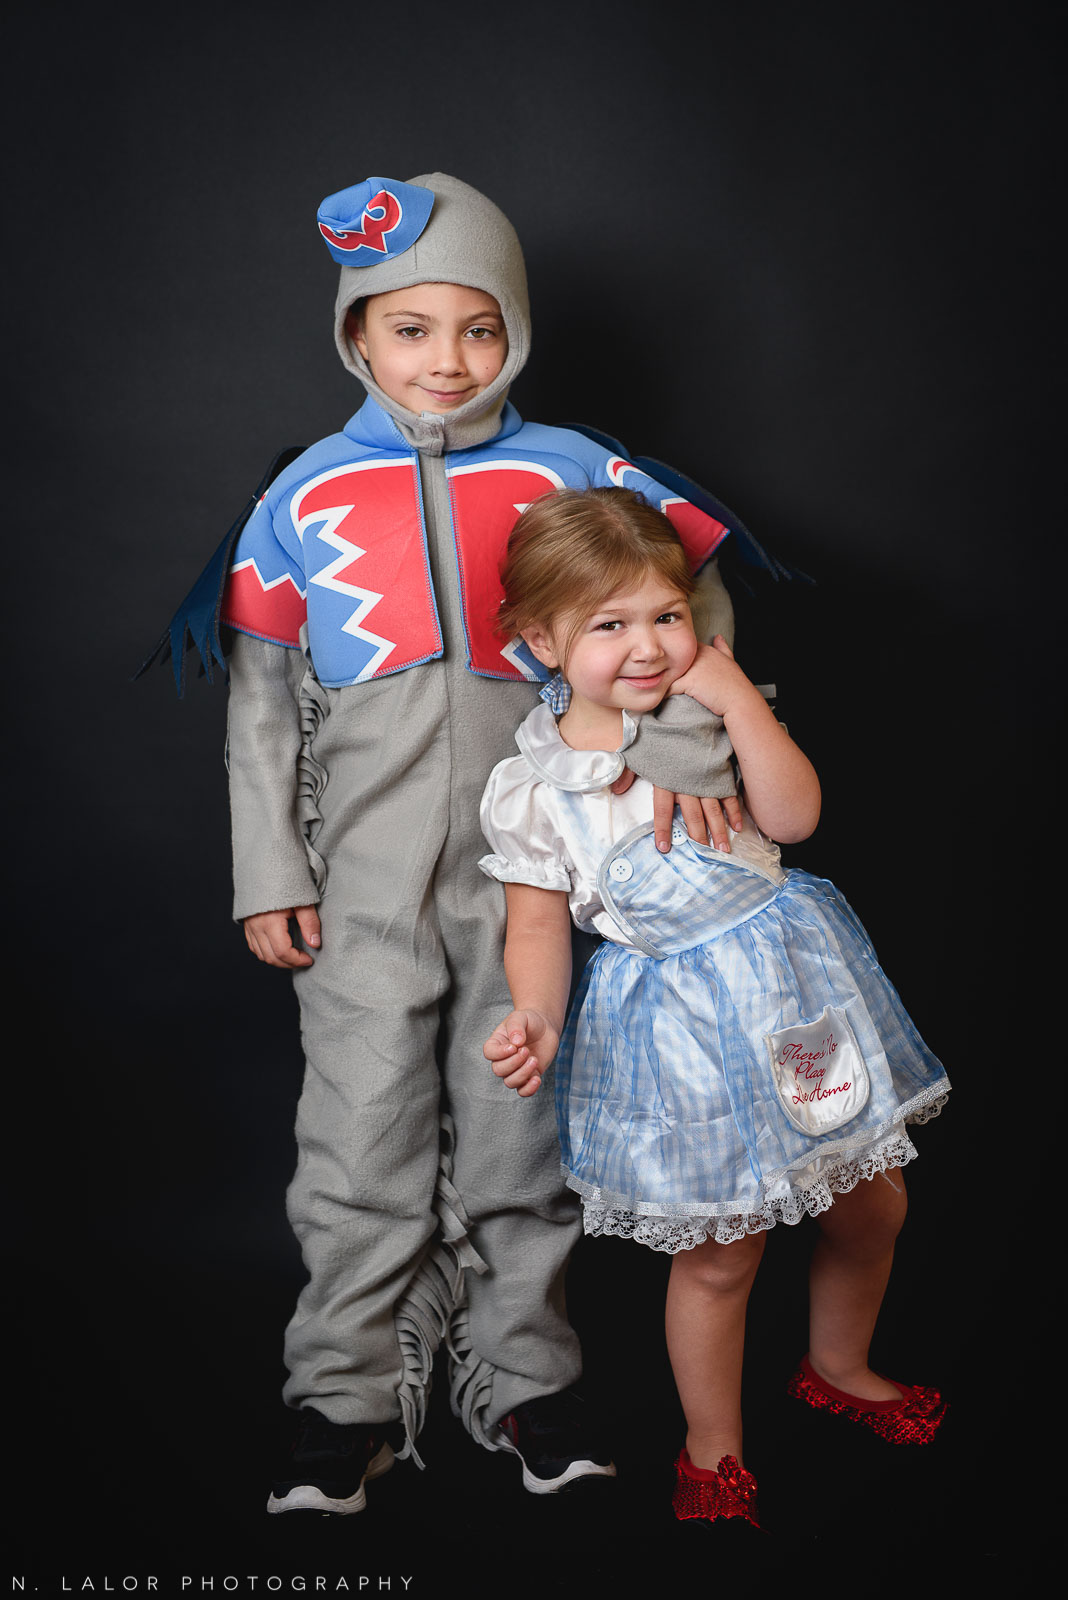 Dorothy and a flying monkey. PJ Masks. Kids Halloween costume portrait by N. Lalor Photography in Greenwich, Connecticut.